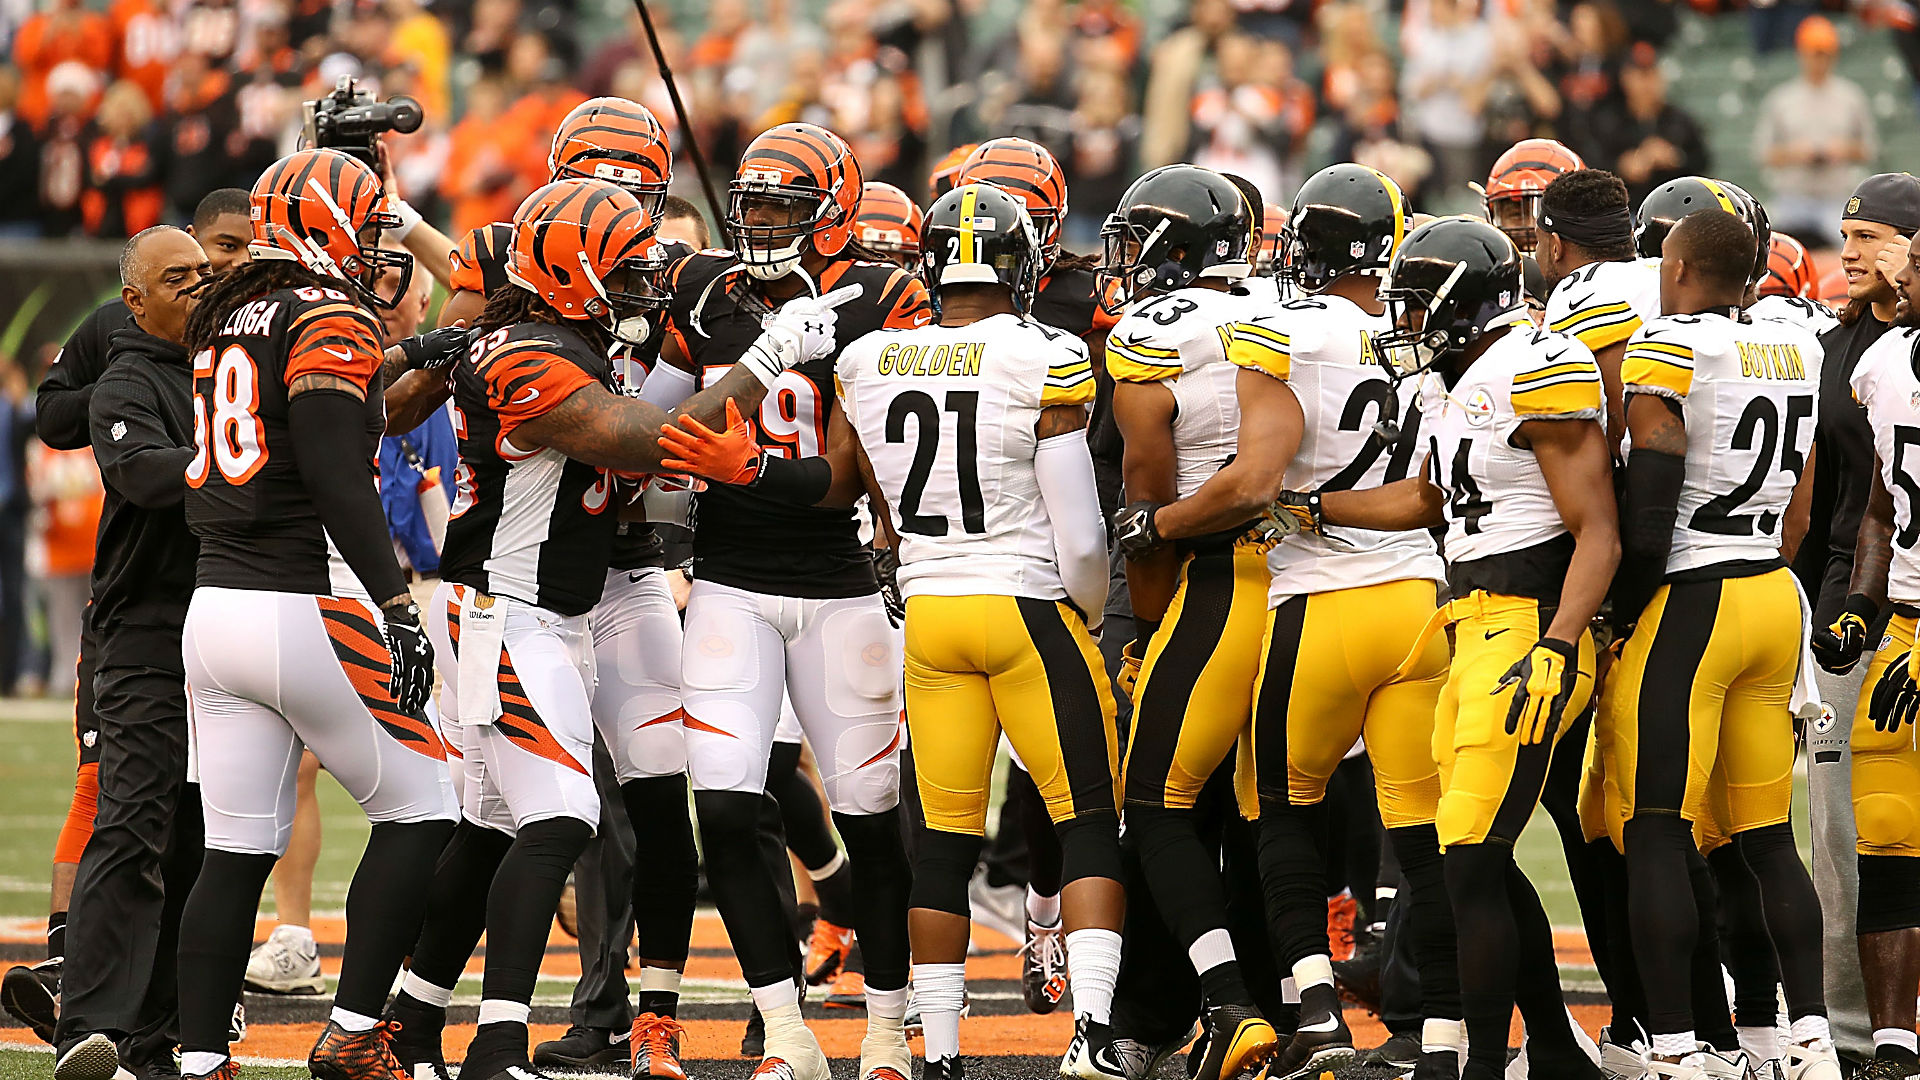 Steelers-bengals-121315-getty-ftrjpg_13lwstbdq8lmf1m7b9r836npq2